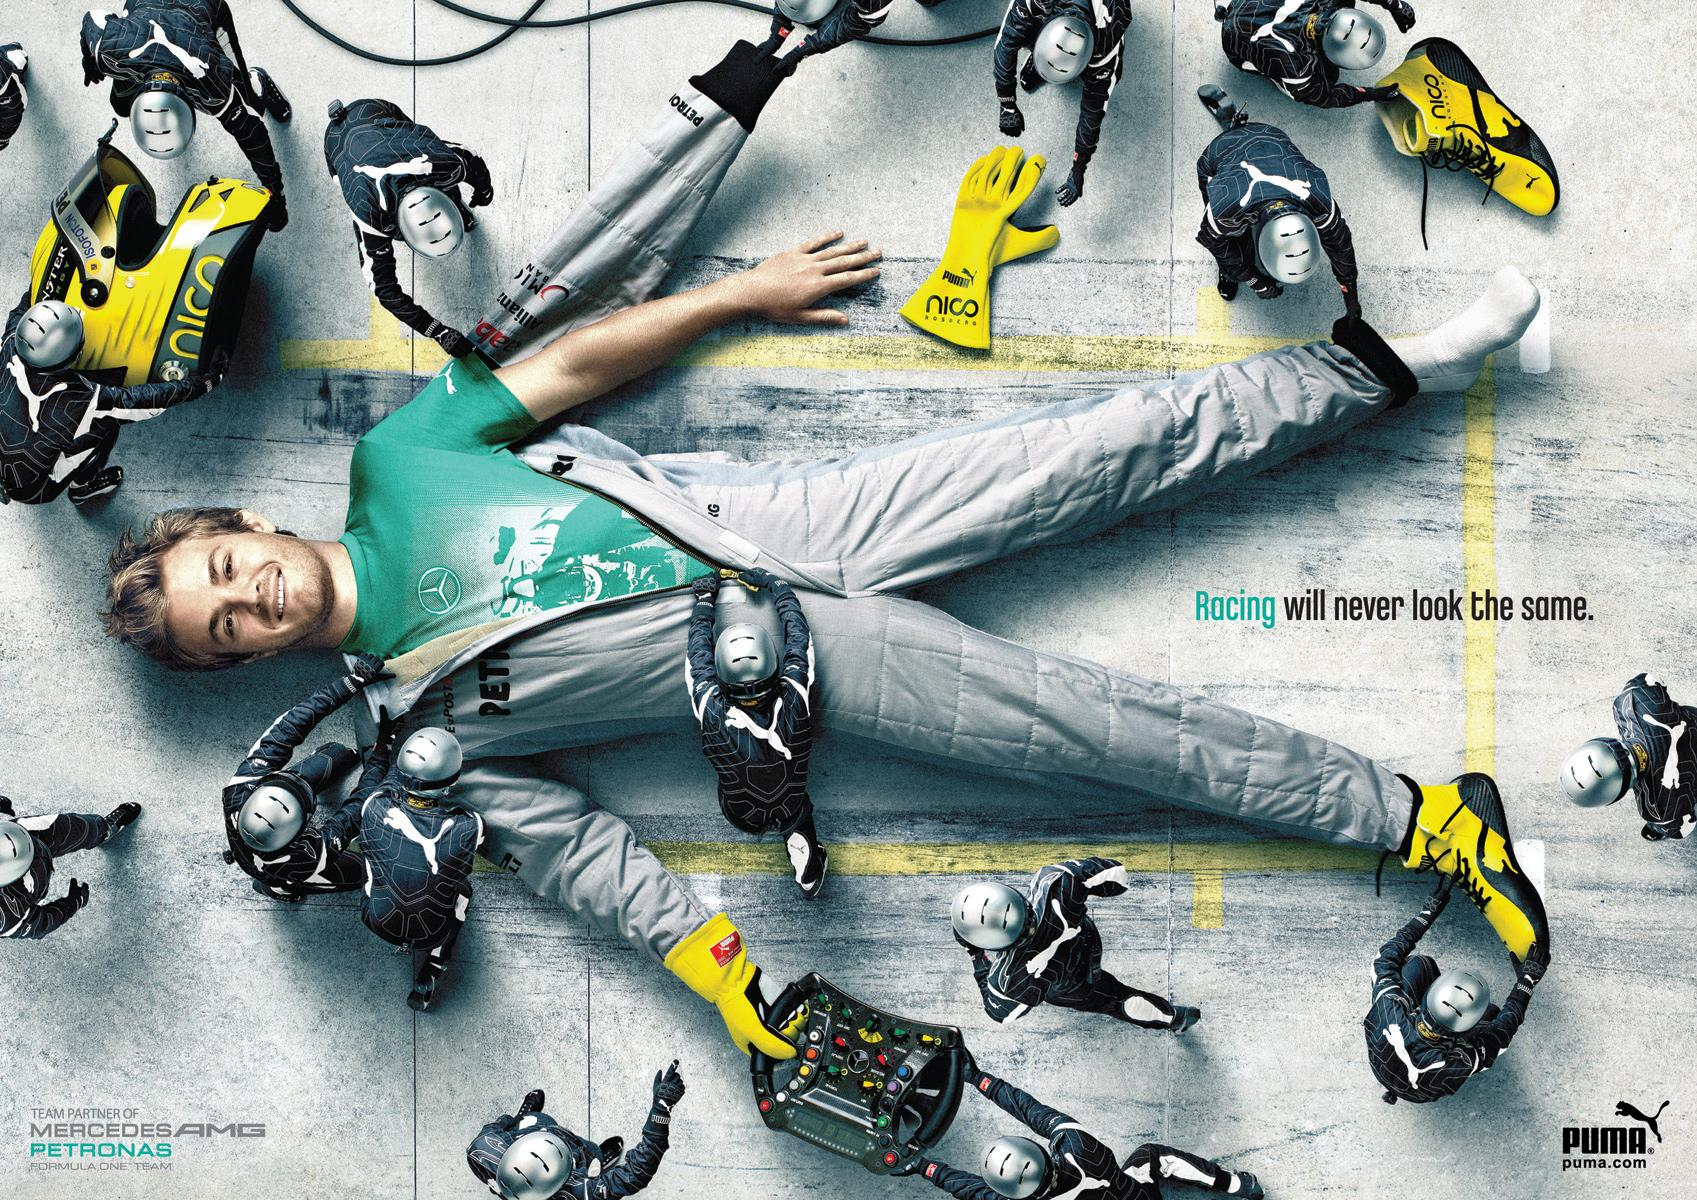 PUMA Mercedes AMG Collab: Rosberg | Ads of the World™